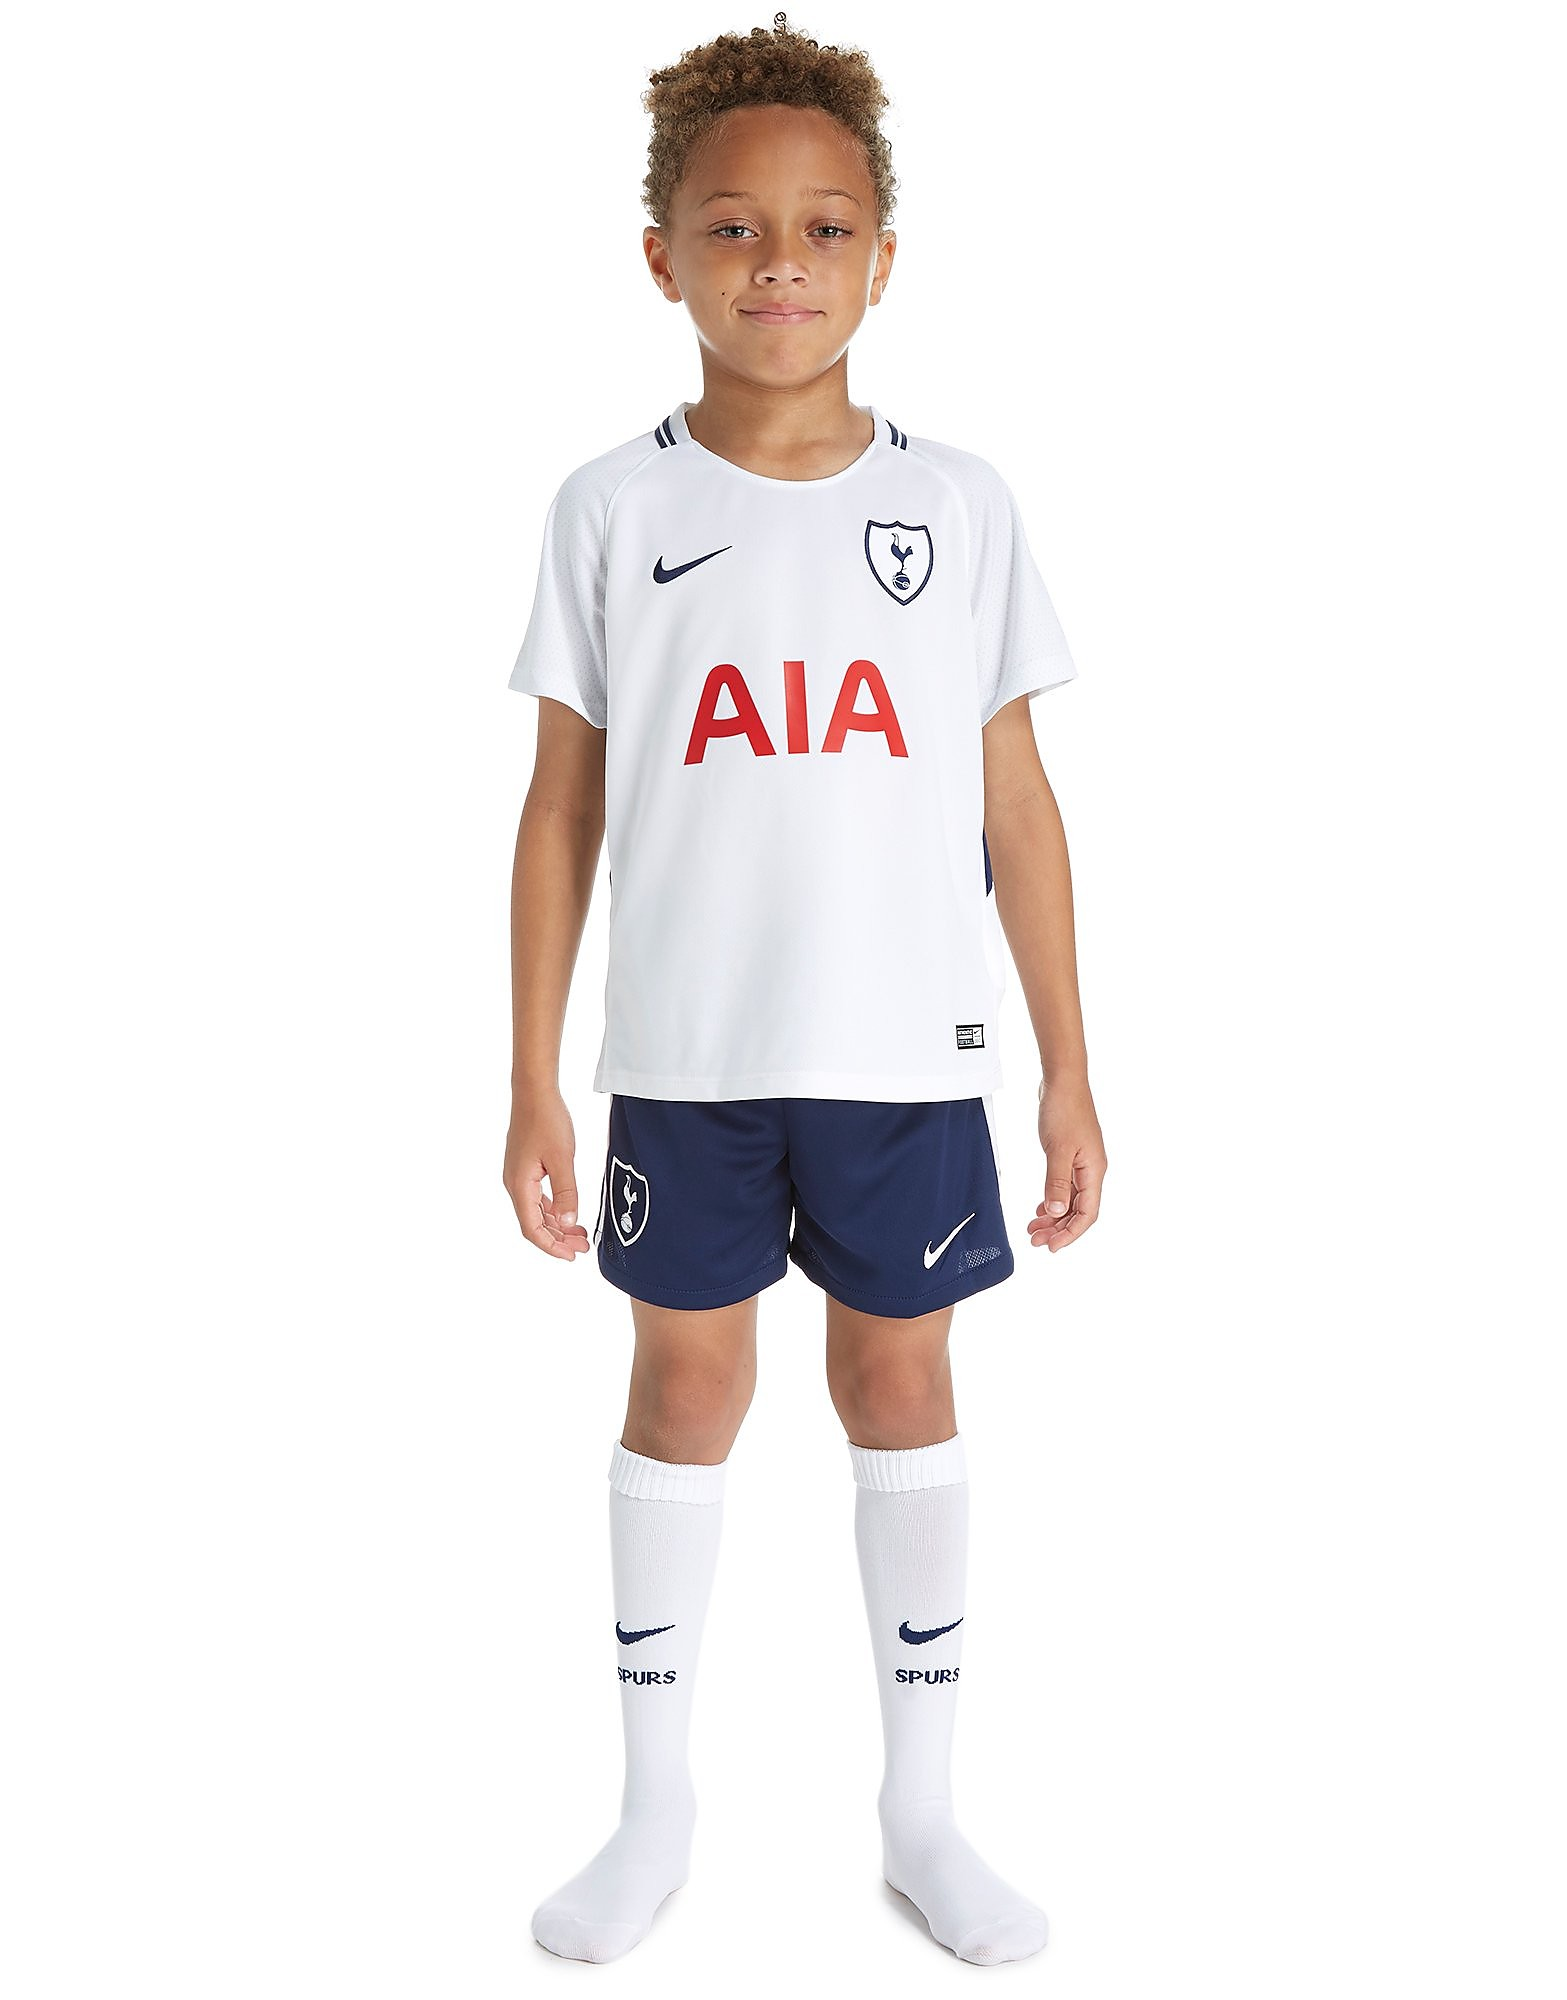 Nike Tottenham Hotspur 2017/18 Home Kit Childrens